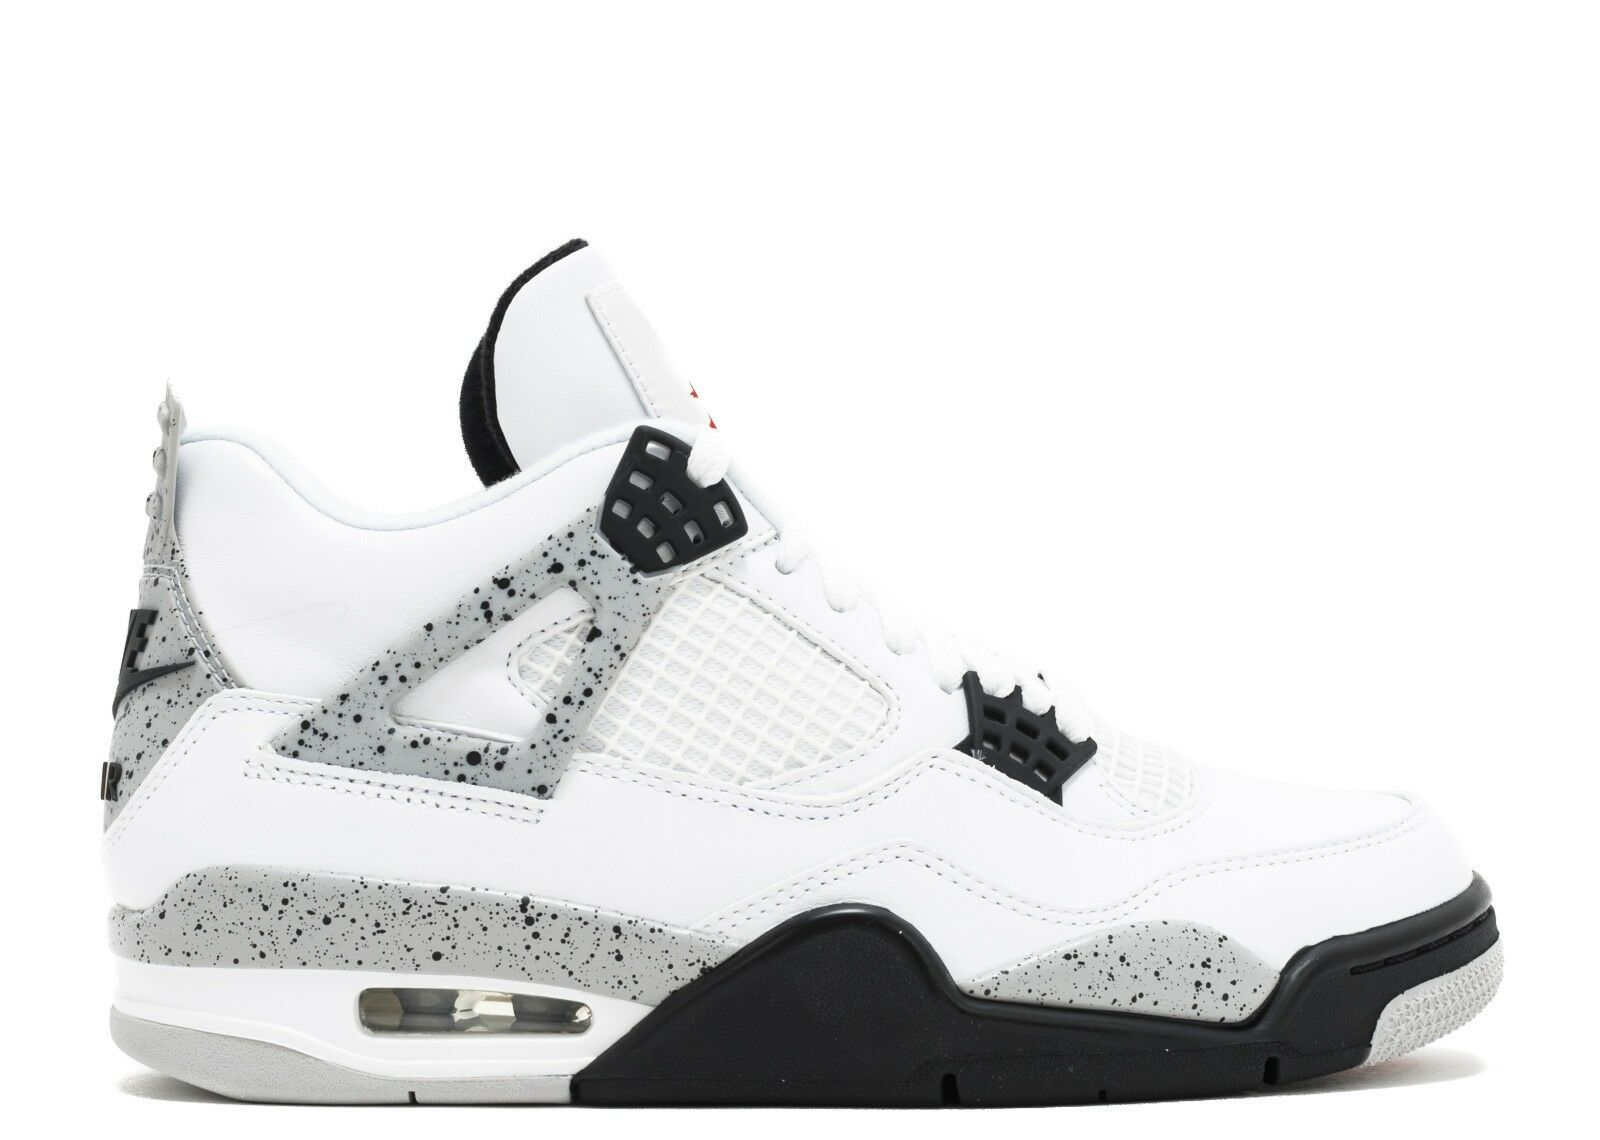 AIR JORDAN IV 4 RETRO WHITE CEMENT 2016 RELEASE BRAND NEW DS  840606 192